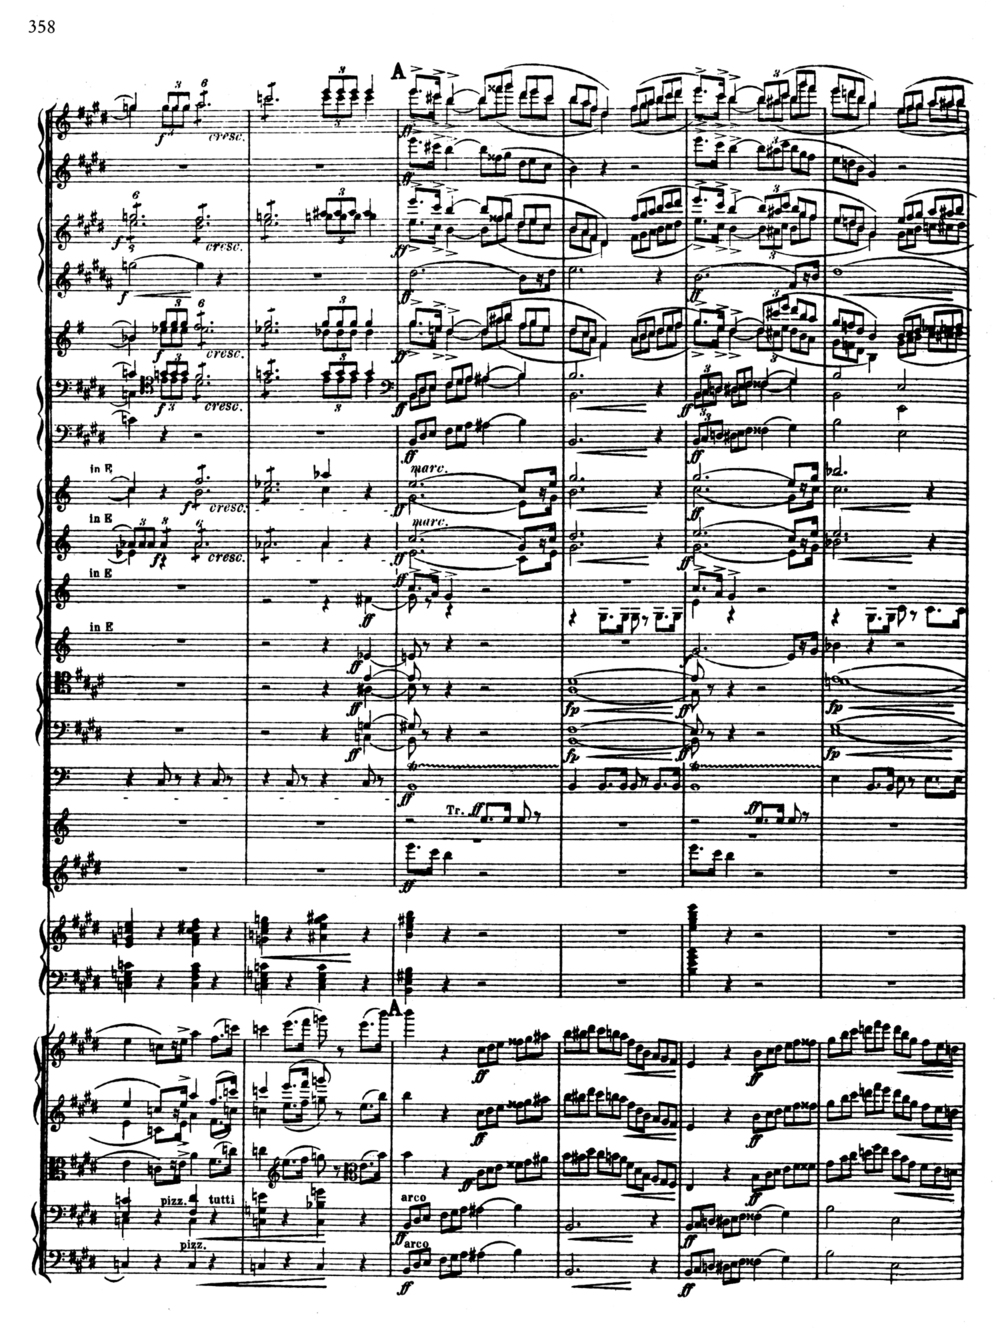 Strauss Don Juan Score 1.jpg